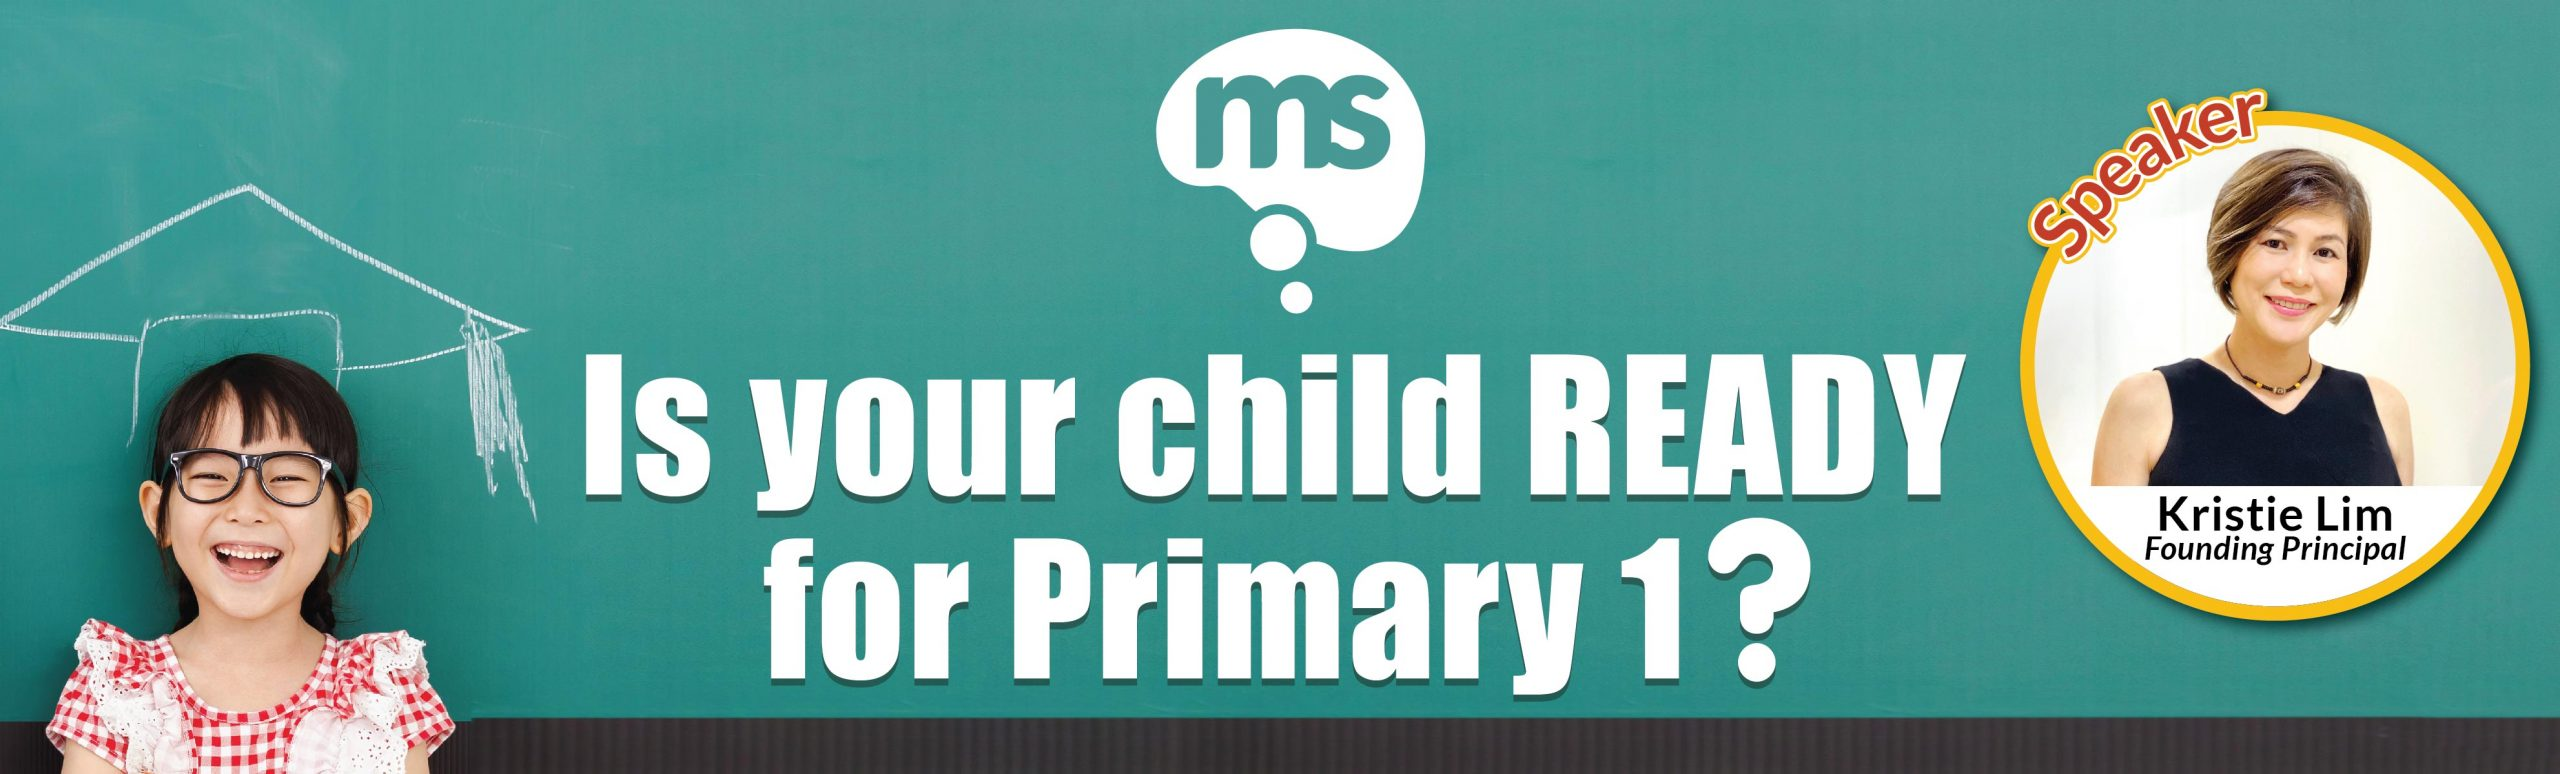 Preparing your Child for Primary 1